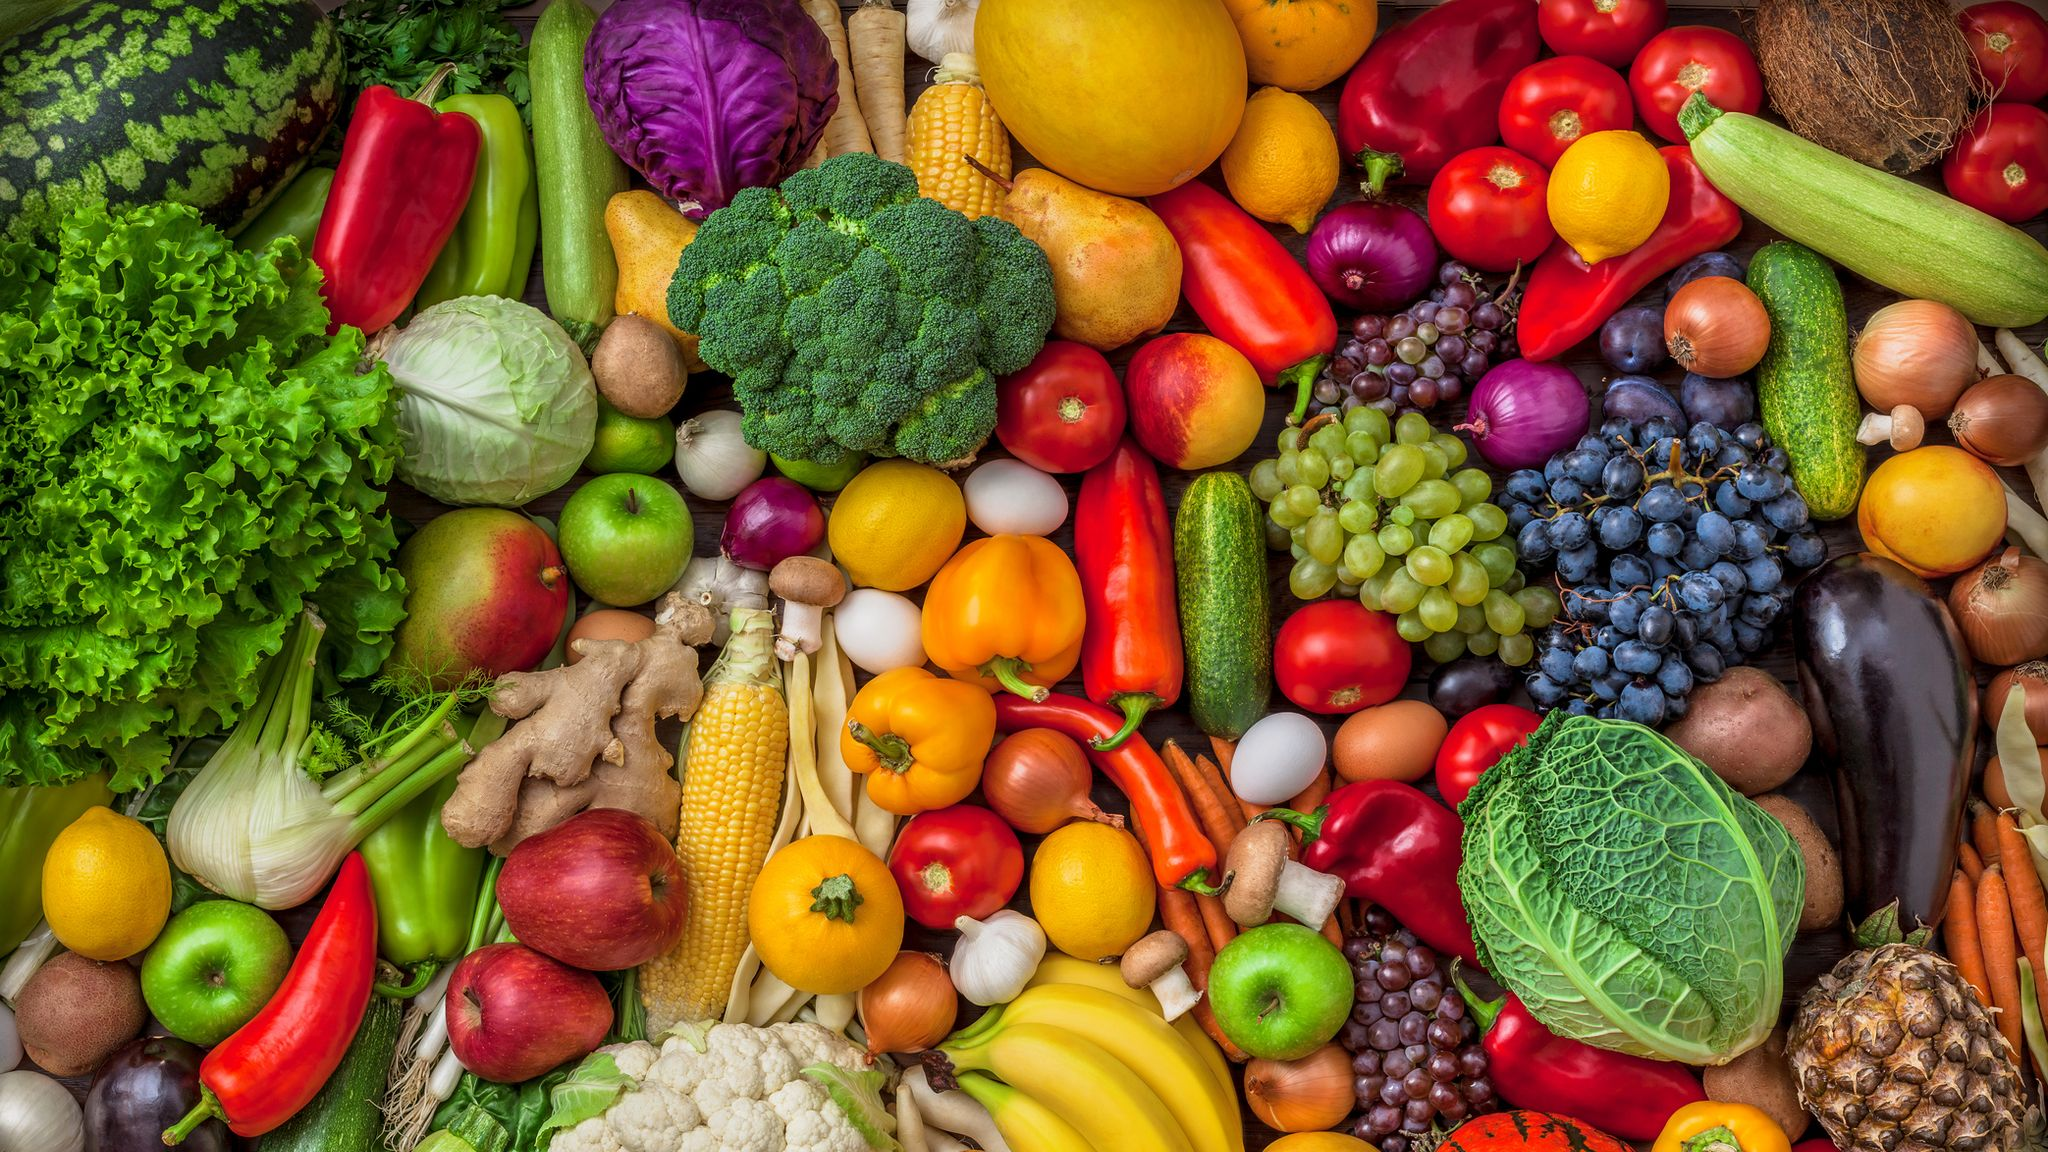 Coffee, fruit and vegetables may cut breast cancer risk | Science ...